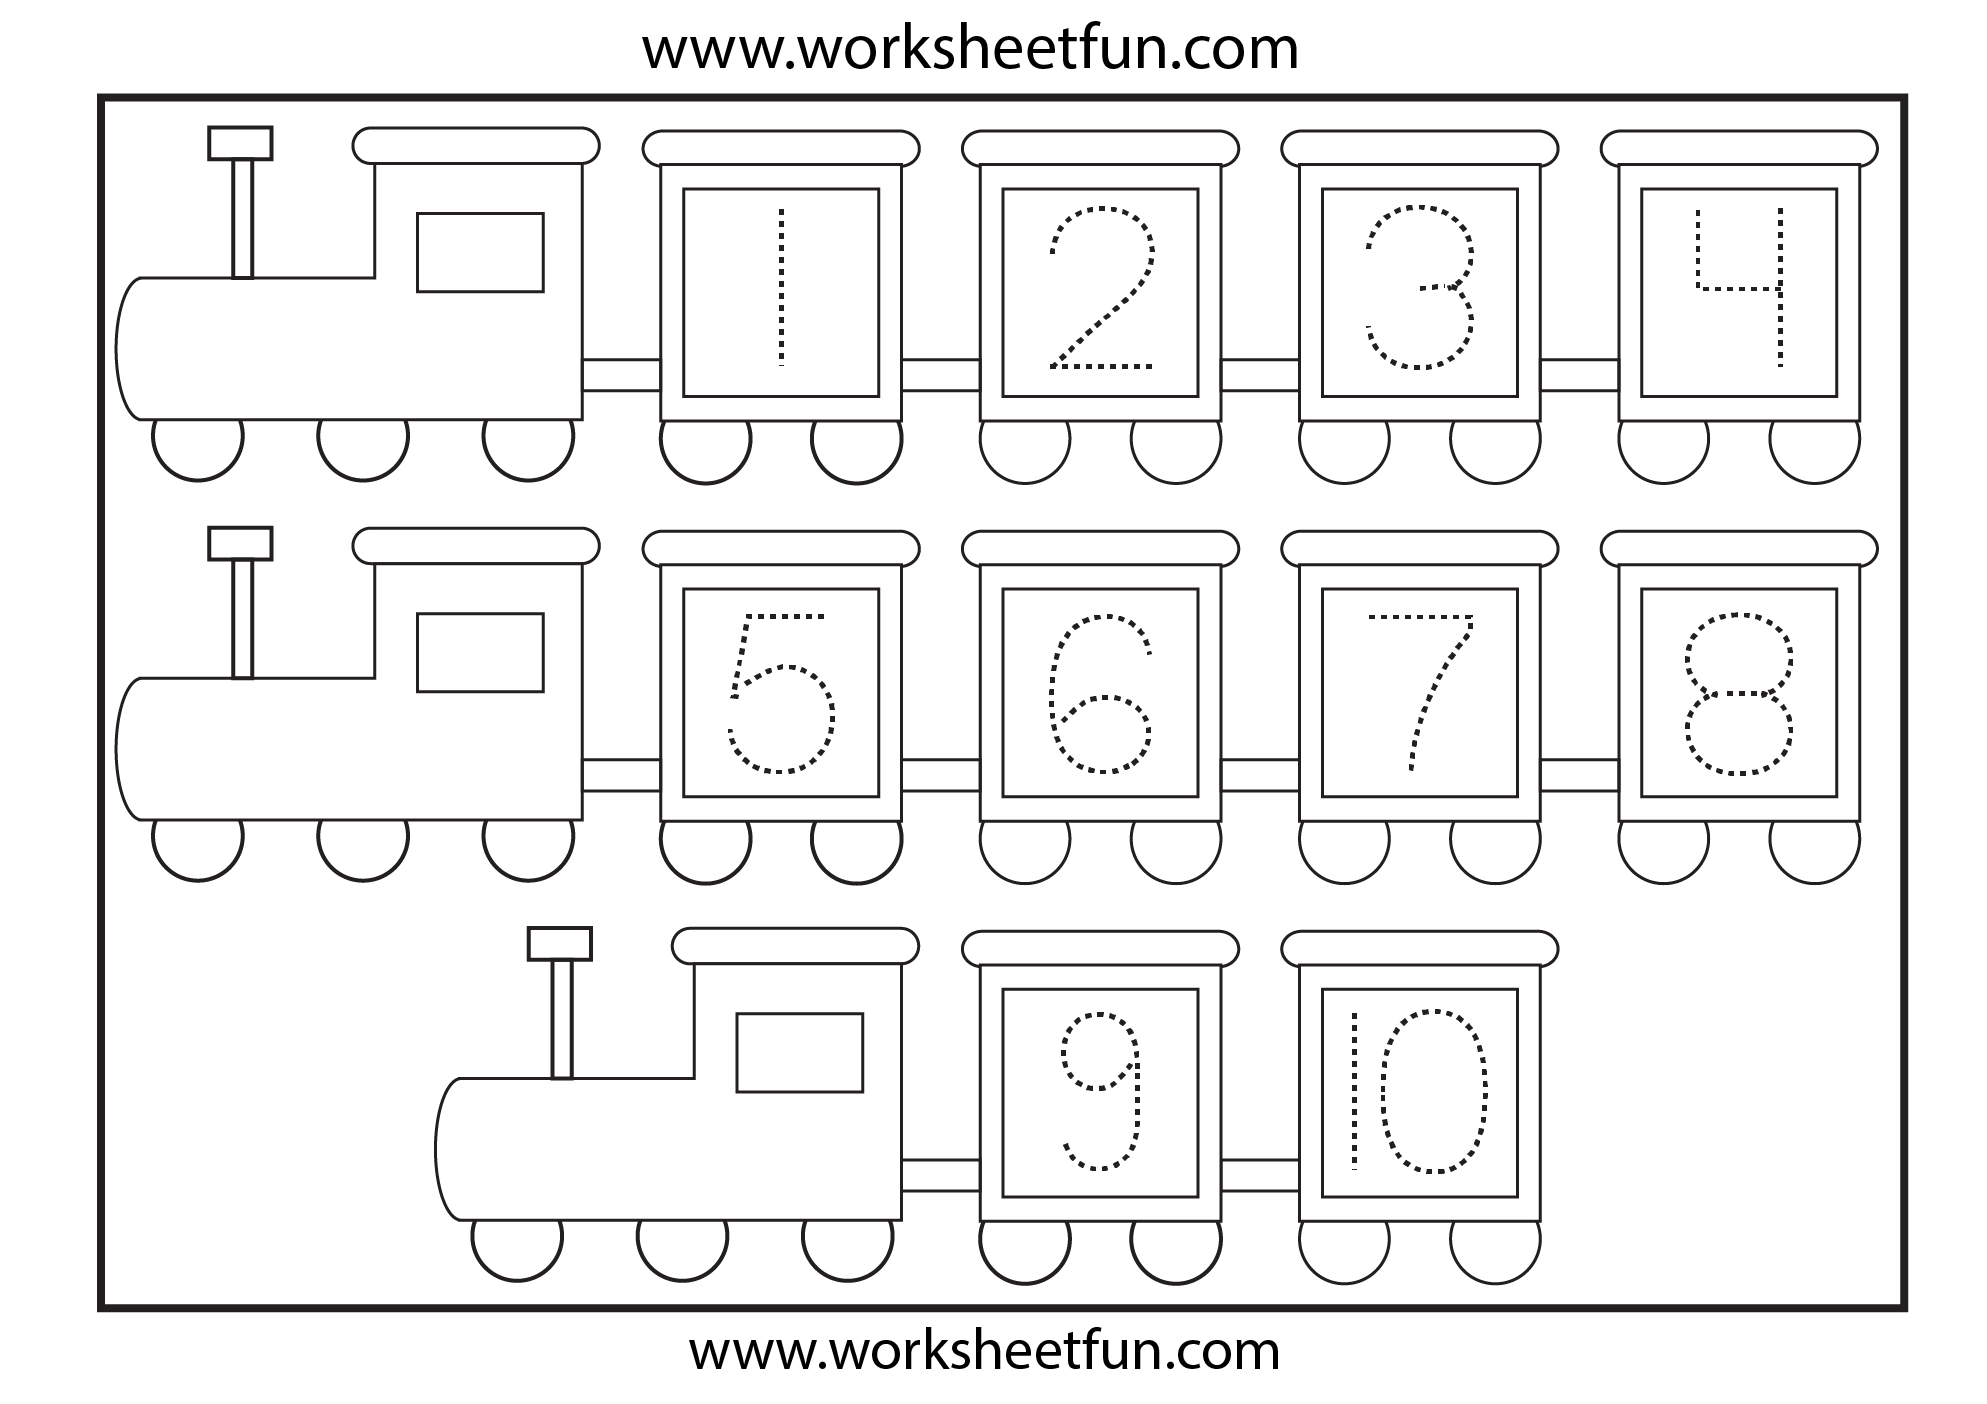 Free Worksheet Free Number Tracing Worksheets 1-10 free number tracing worksheets 1 10 photos beatlesblogcarnival 17 best images about on pinterest to work